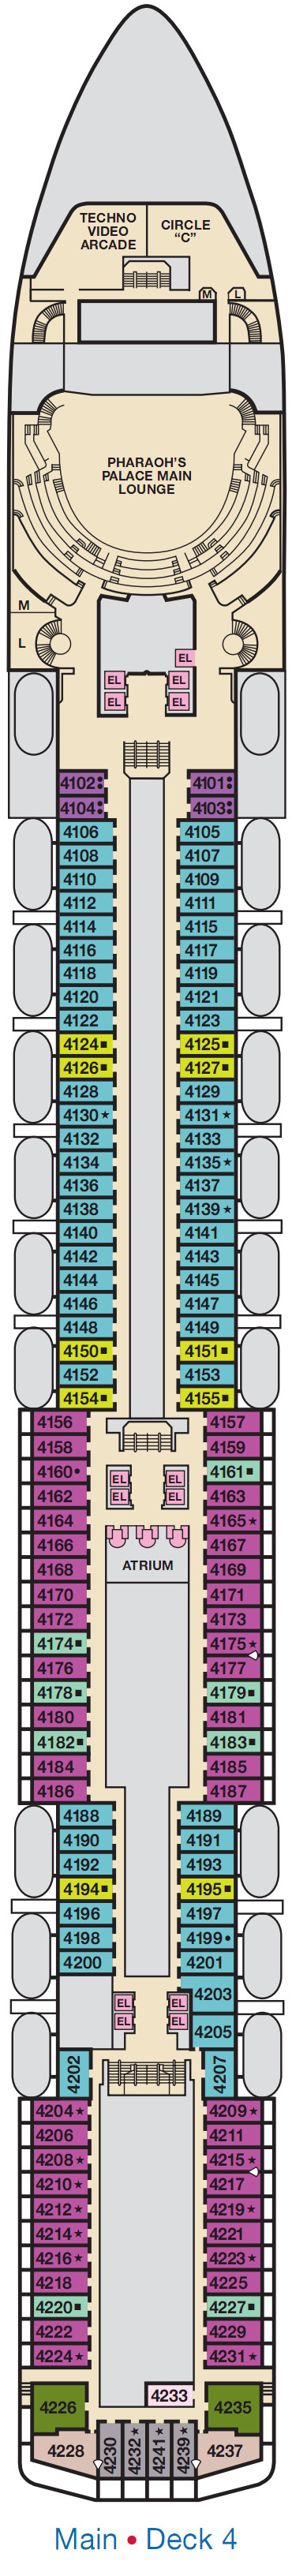 Carnival Spirit Main Deck 4 layout